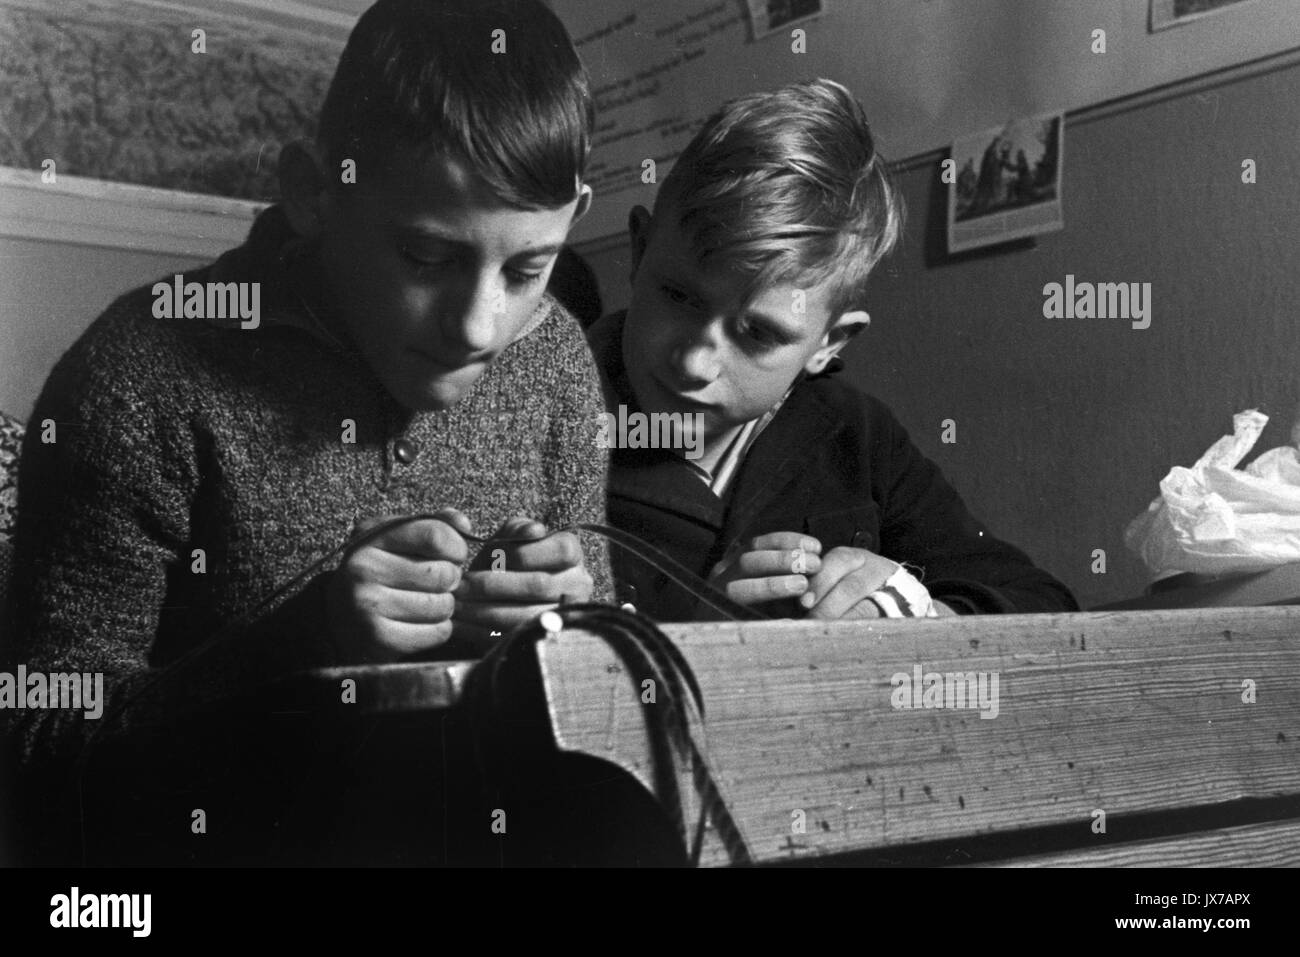 Schoolboys looking at old celluloid filmstrip in classroom. Stock Photo